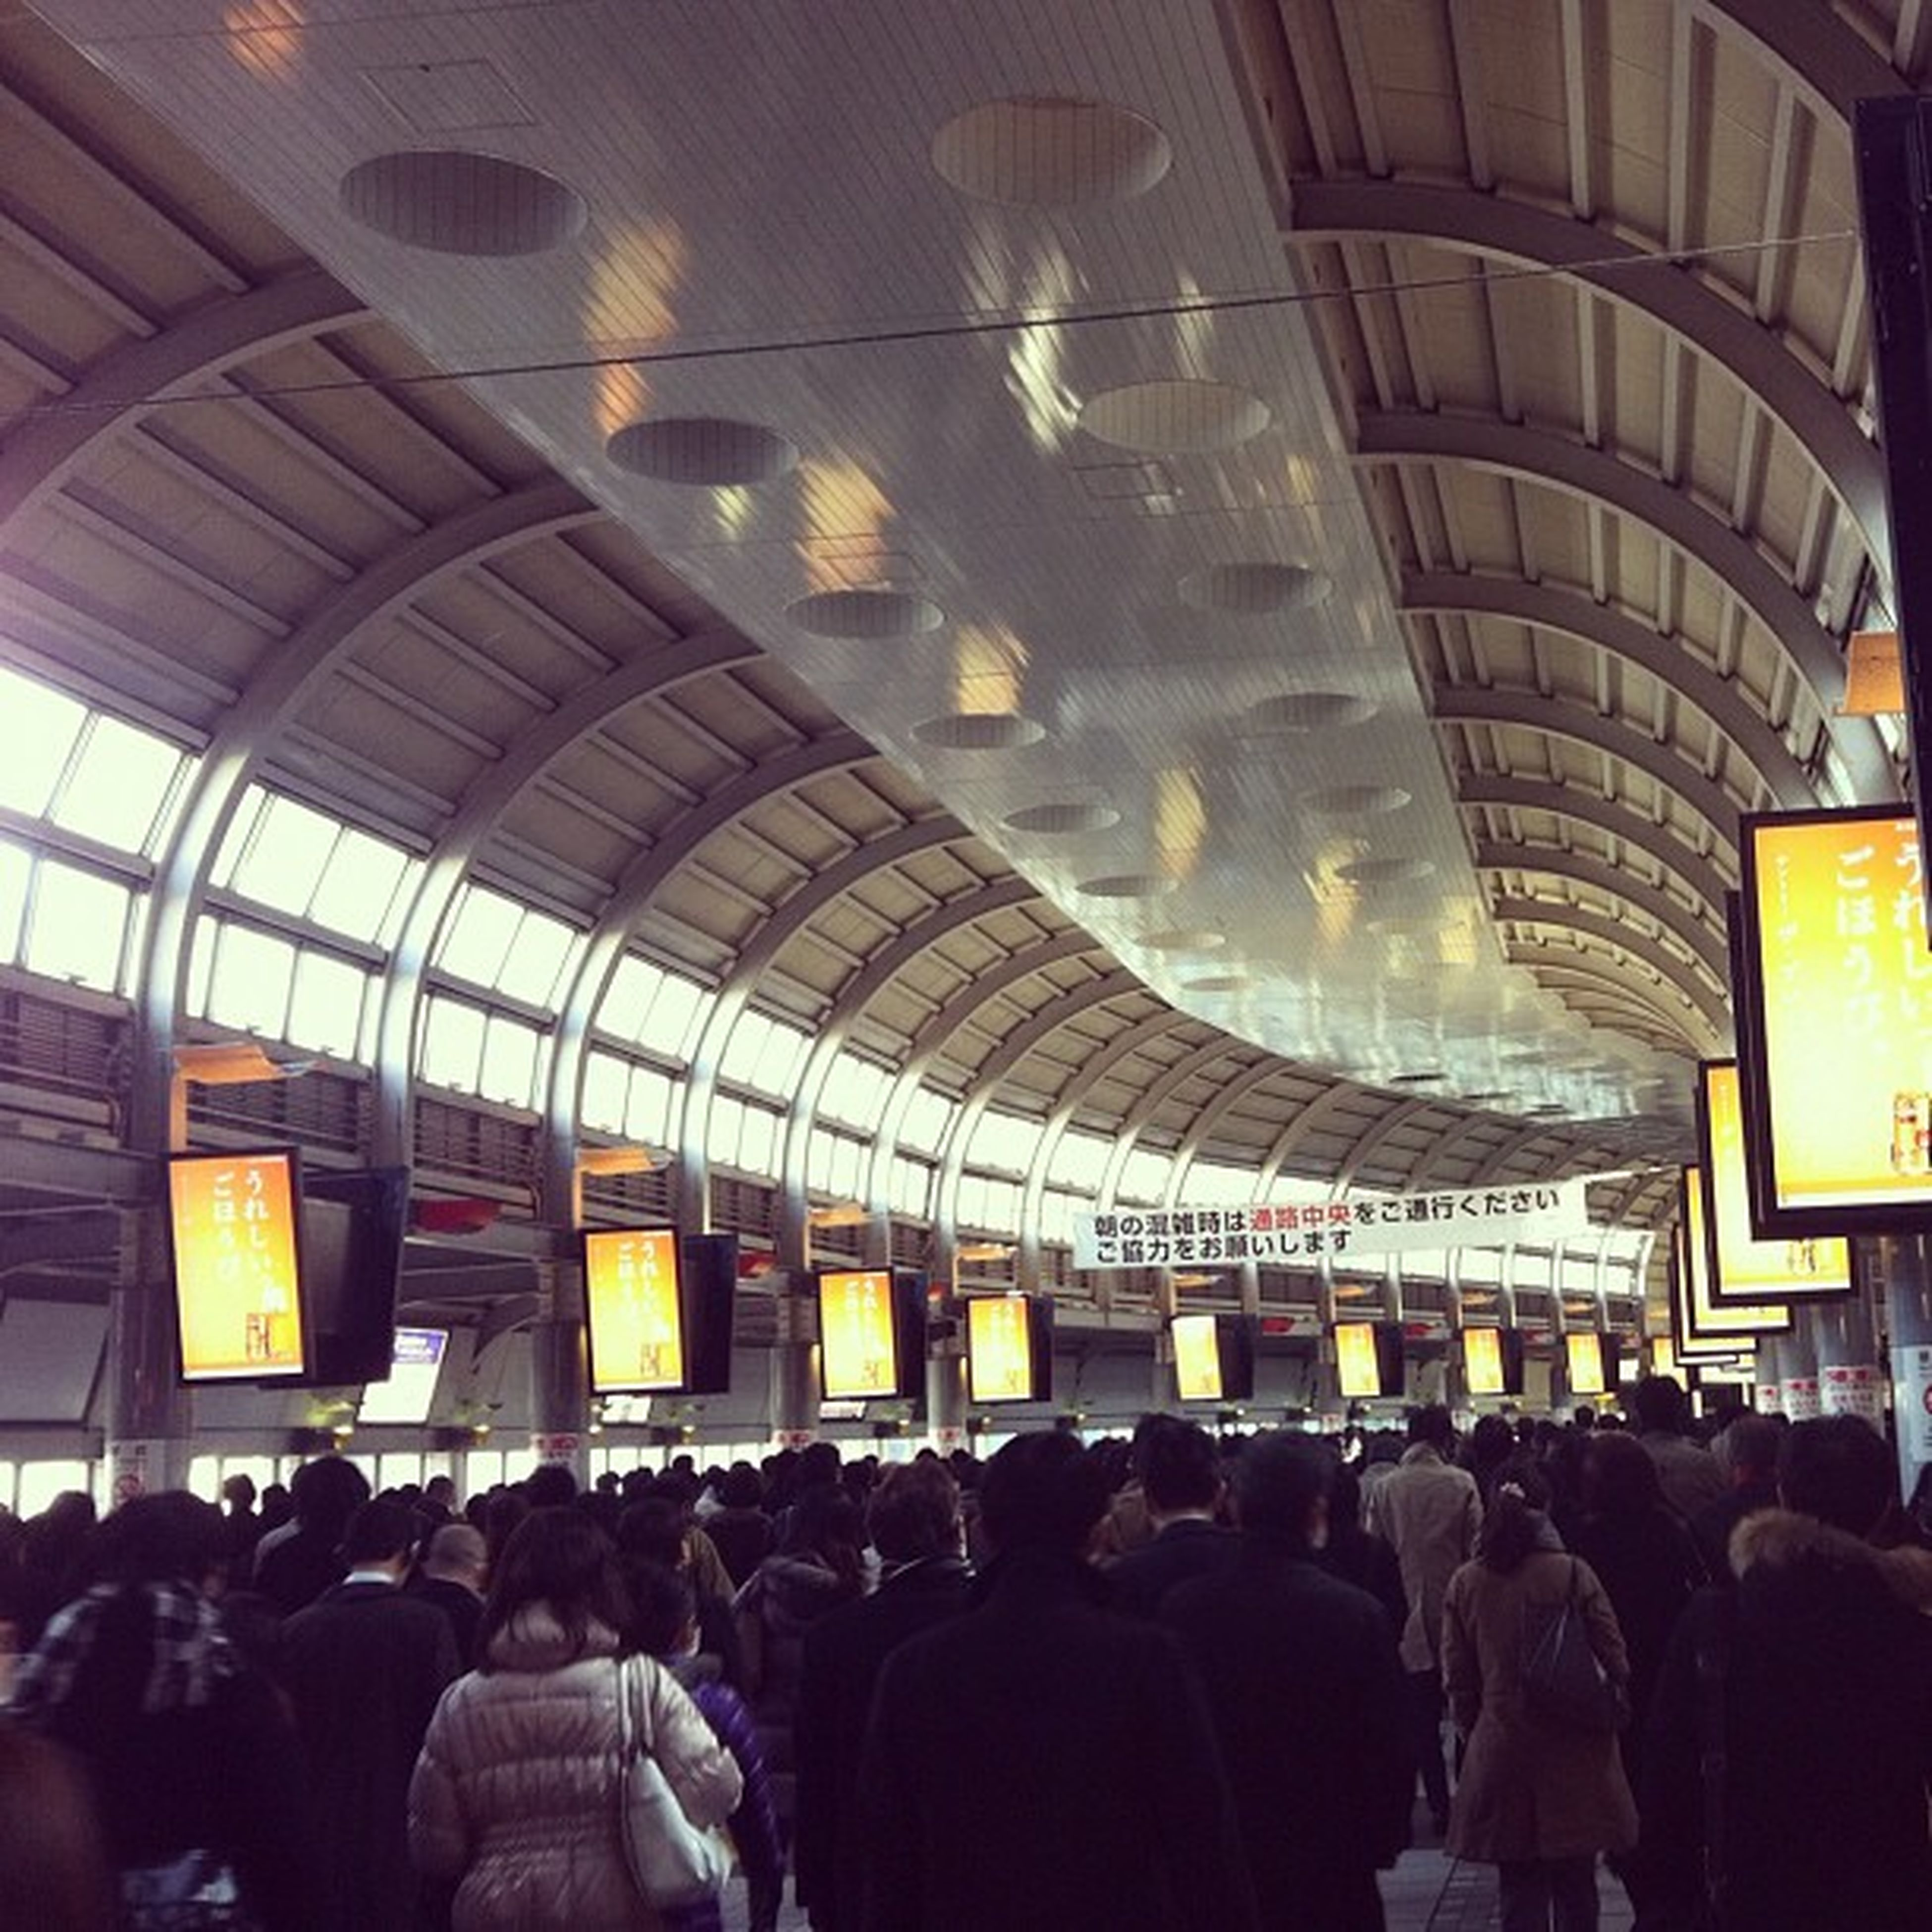 indoors, large group of people, public transportation, railroad station, men, transportation, illuminated, person, rail transportation, journey, passenger, crowd, lifestyles, travel, airport, ceiling, train - vehicle, in a row, subway station